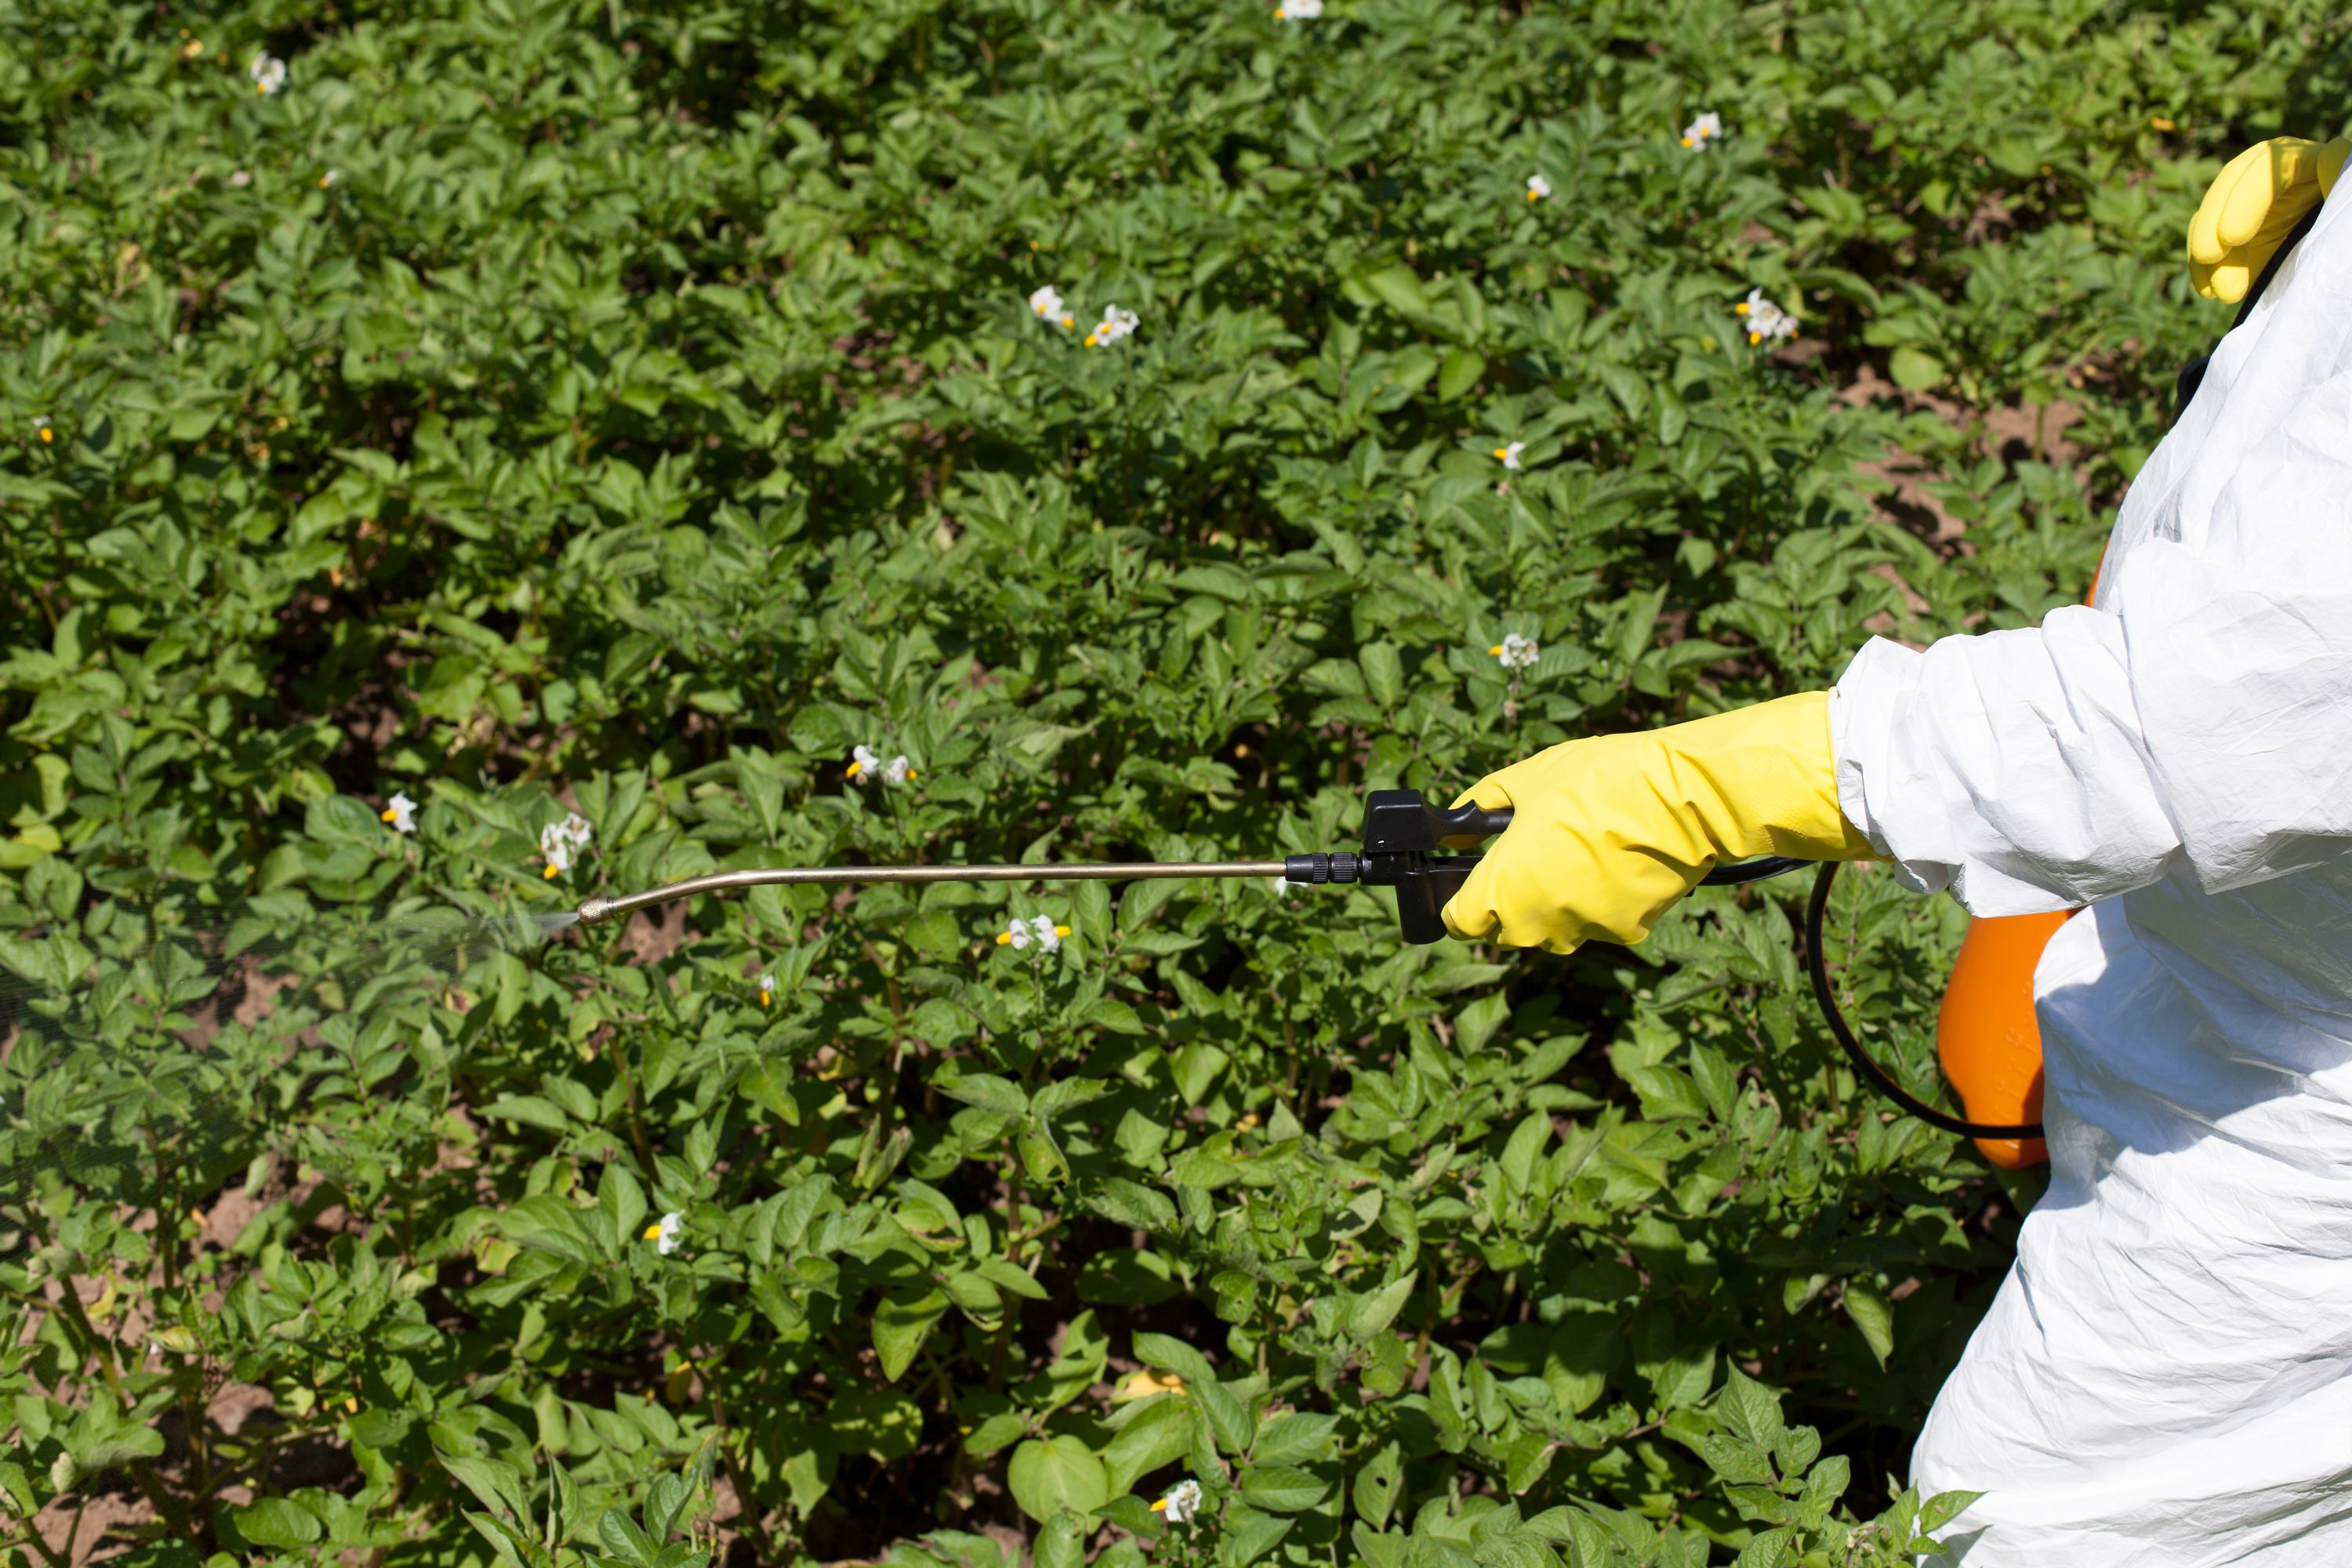 Man spraying pesticide on bushes